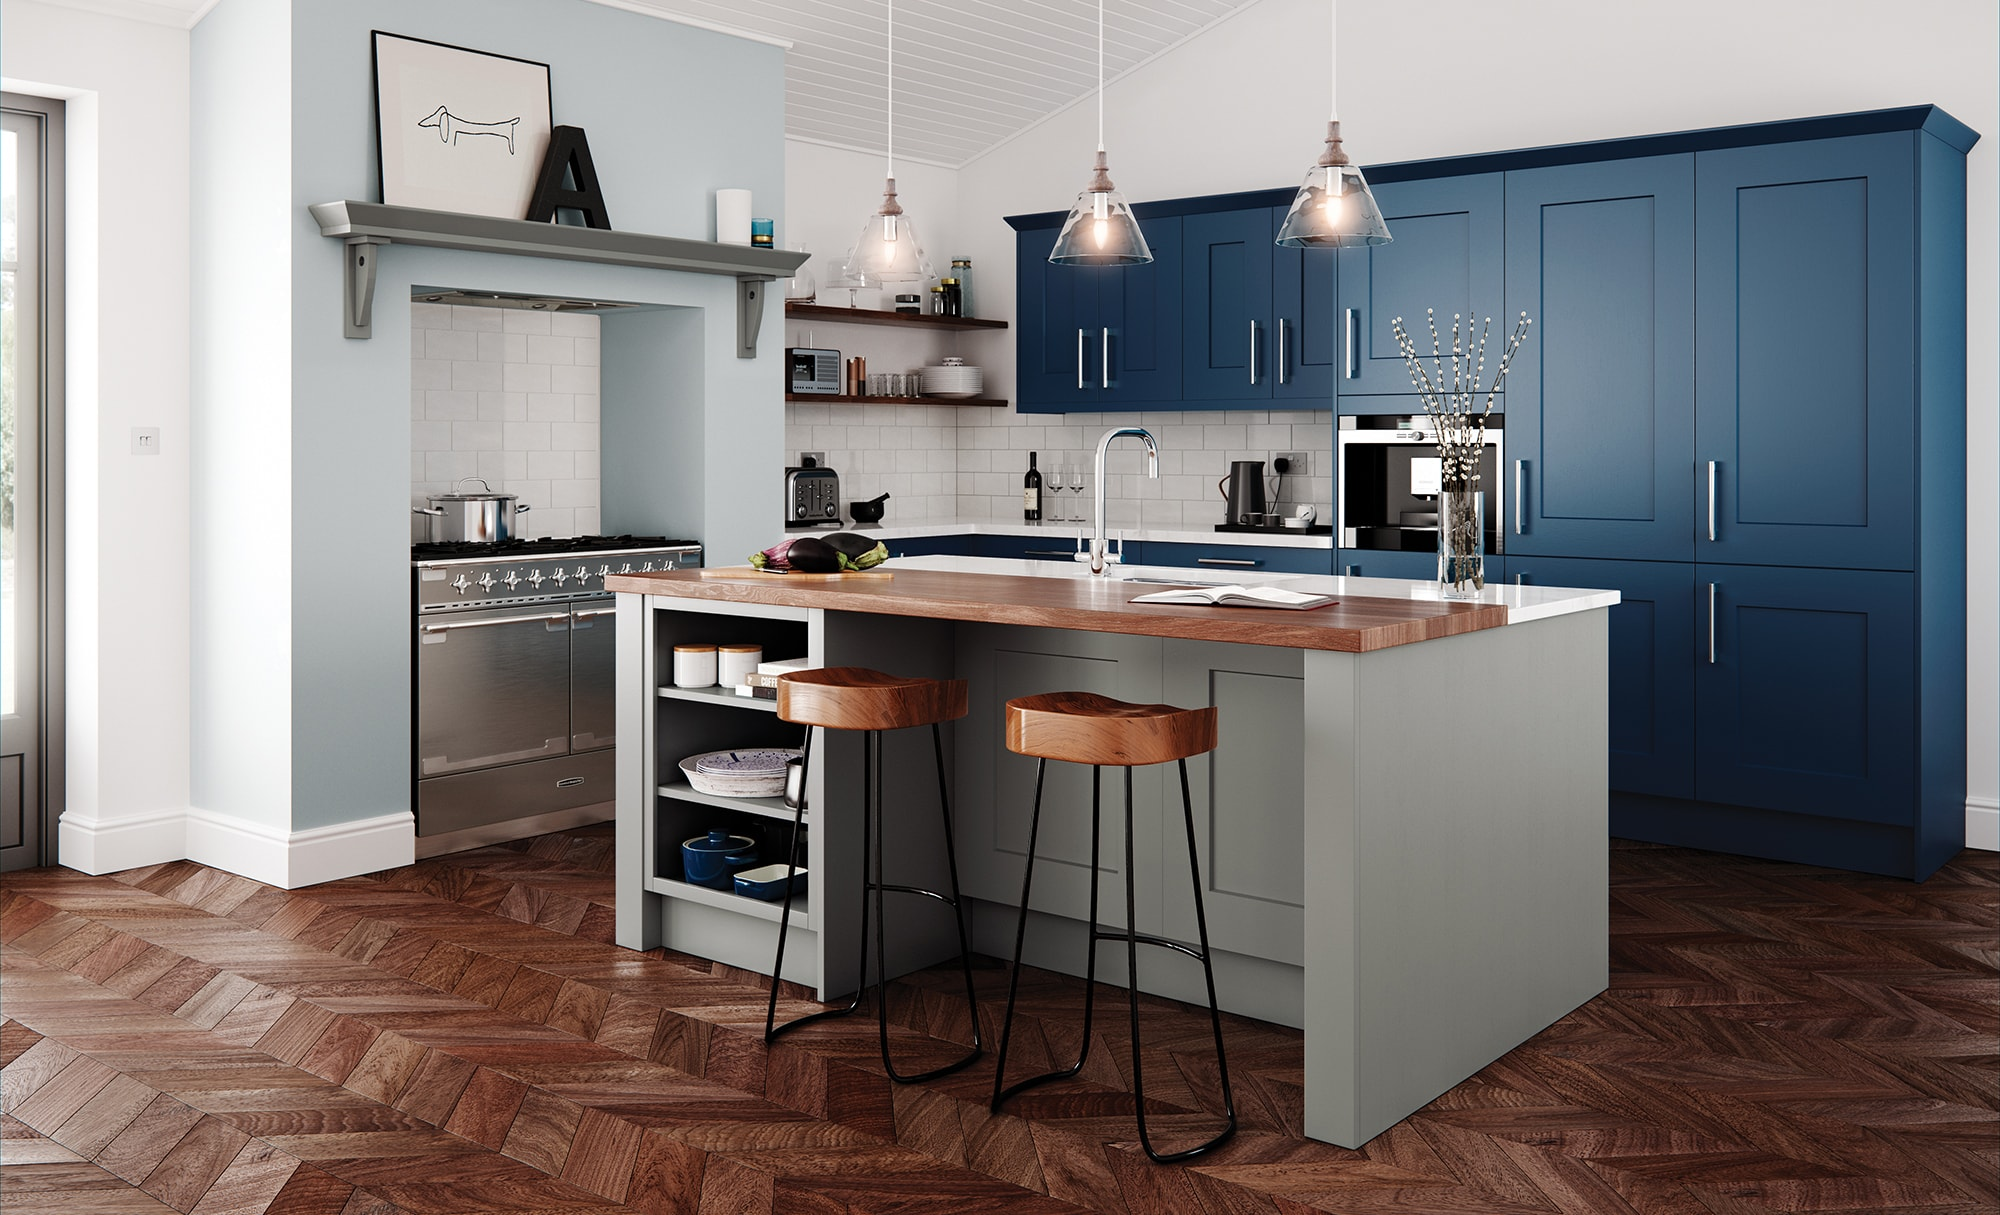 kitchen stone where to buy a island clonmel shaker parisian blue stori classic traditional in painted